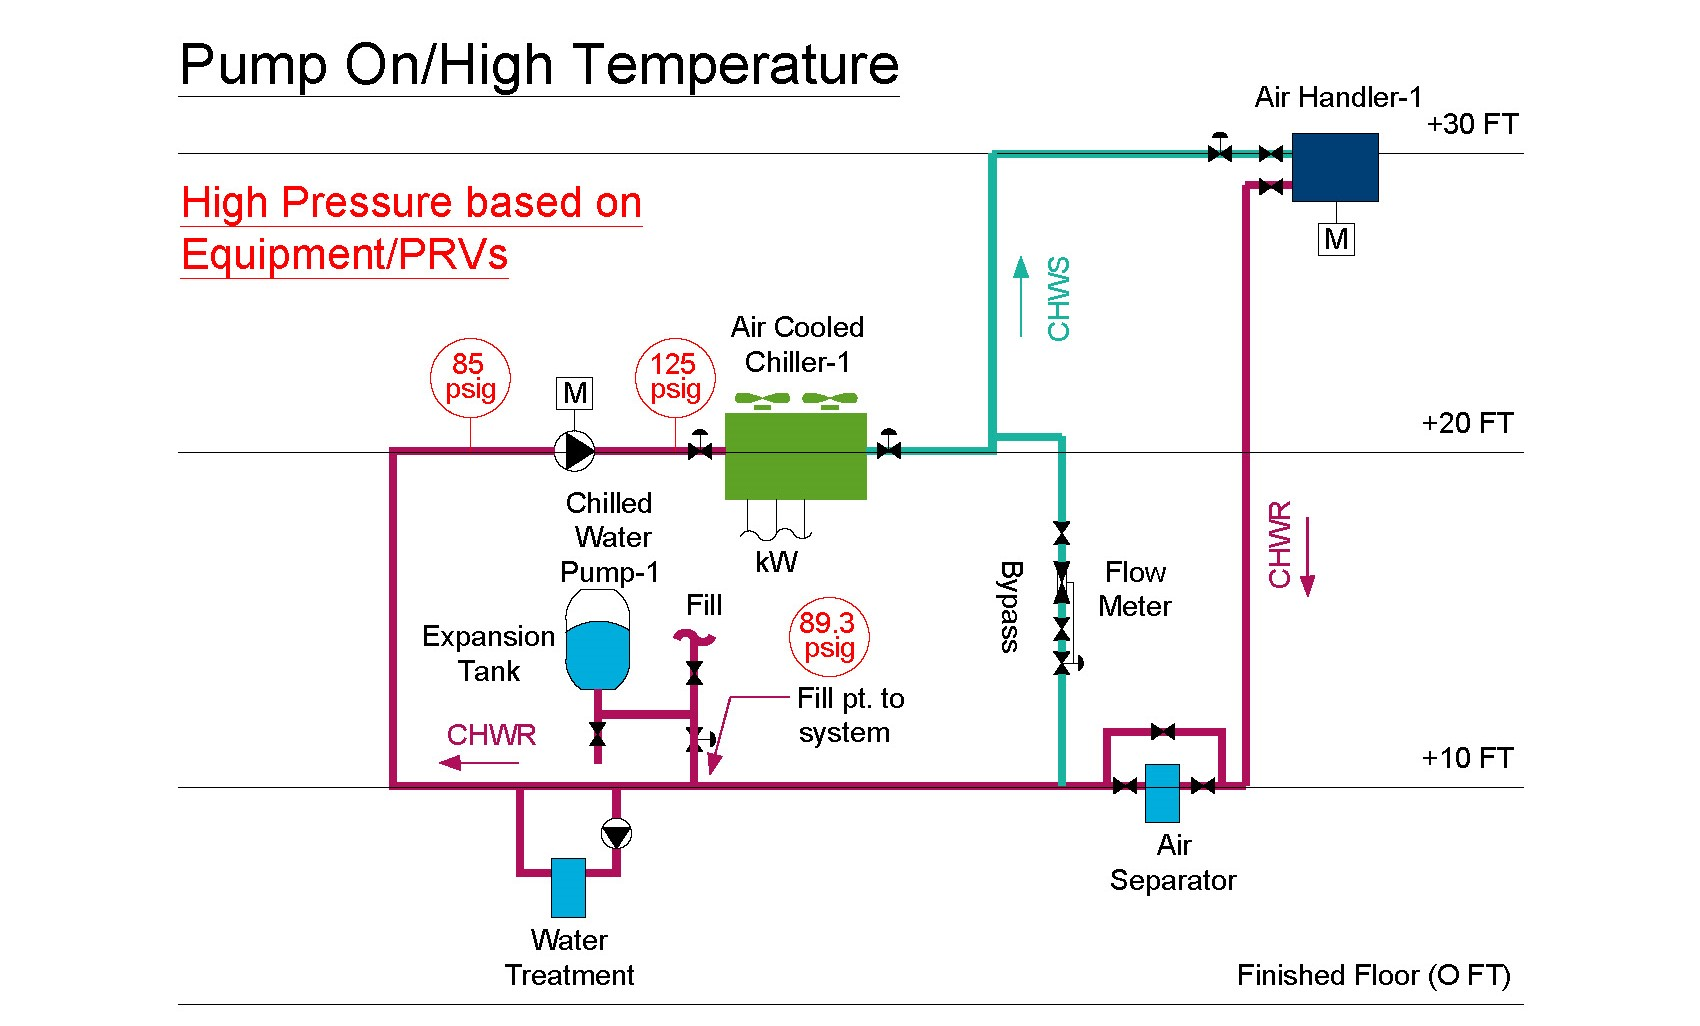 hight resolution of chilled water diagram with an expansion tank with the pump on and the temperature at its